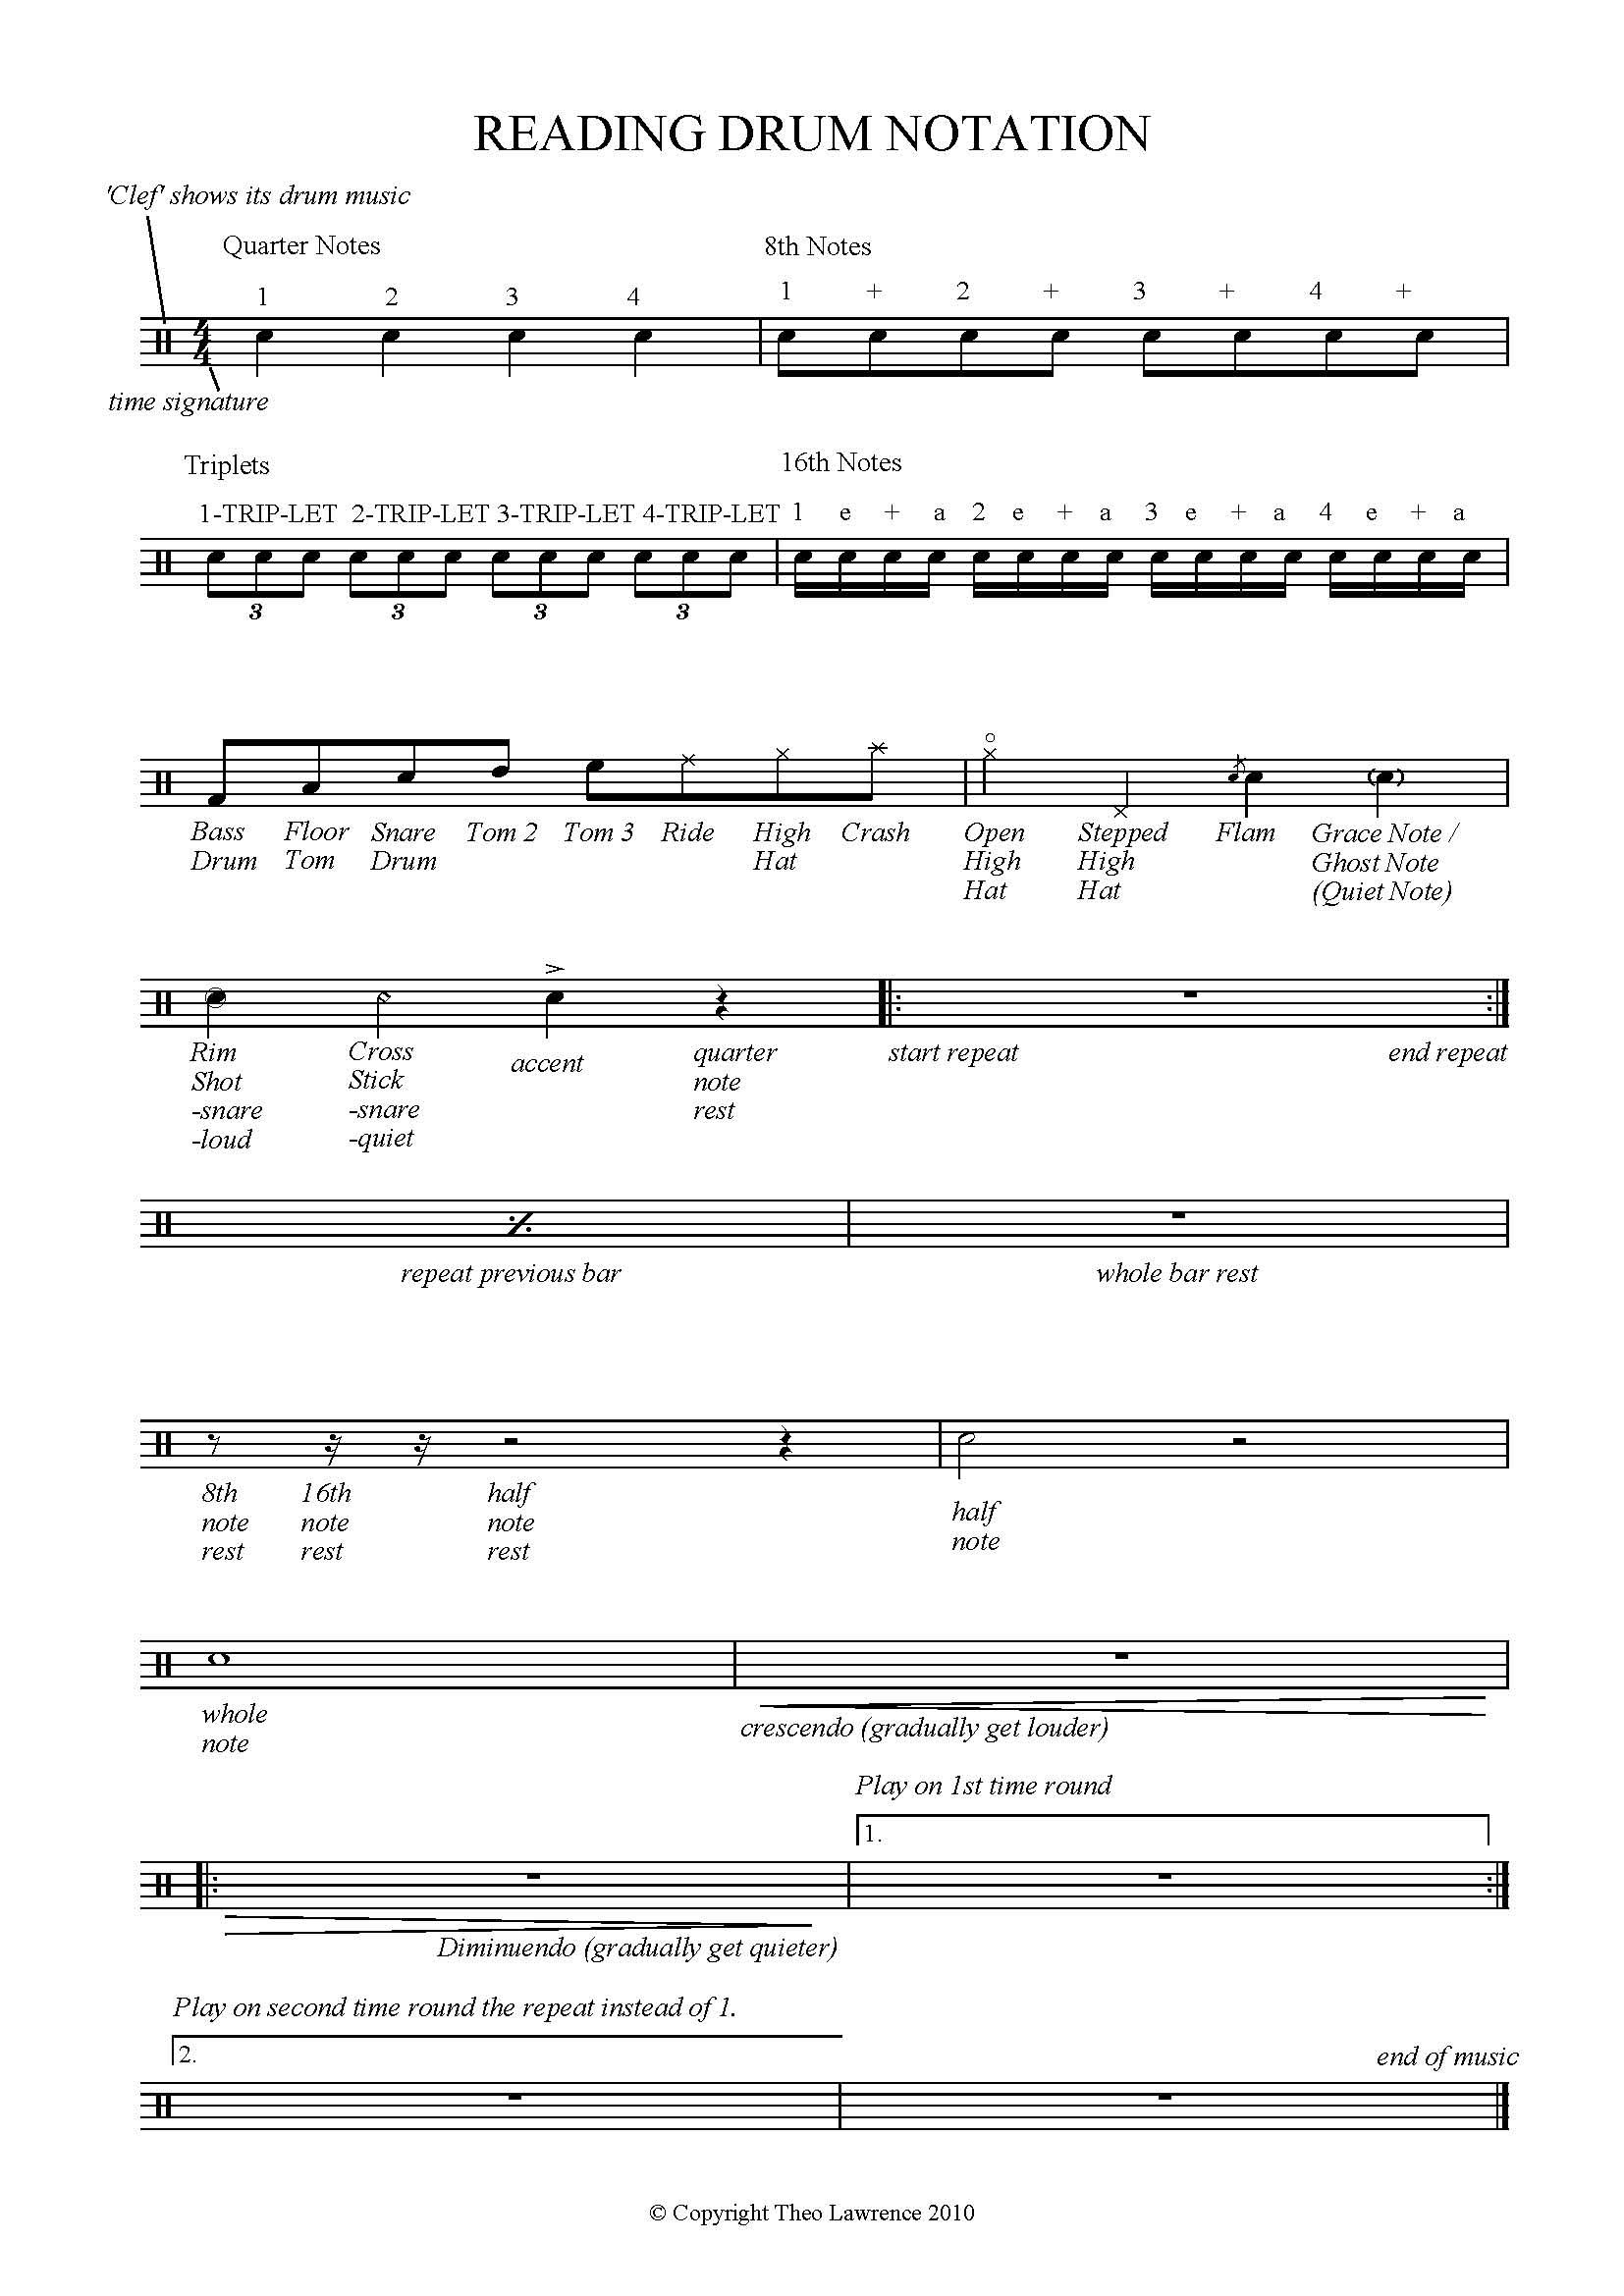 How to read drum notation pinteres how to read drum notation sheet music biocorpaavc Gallery